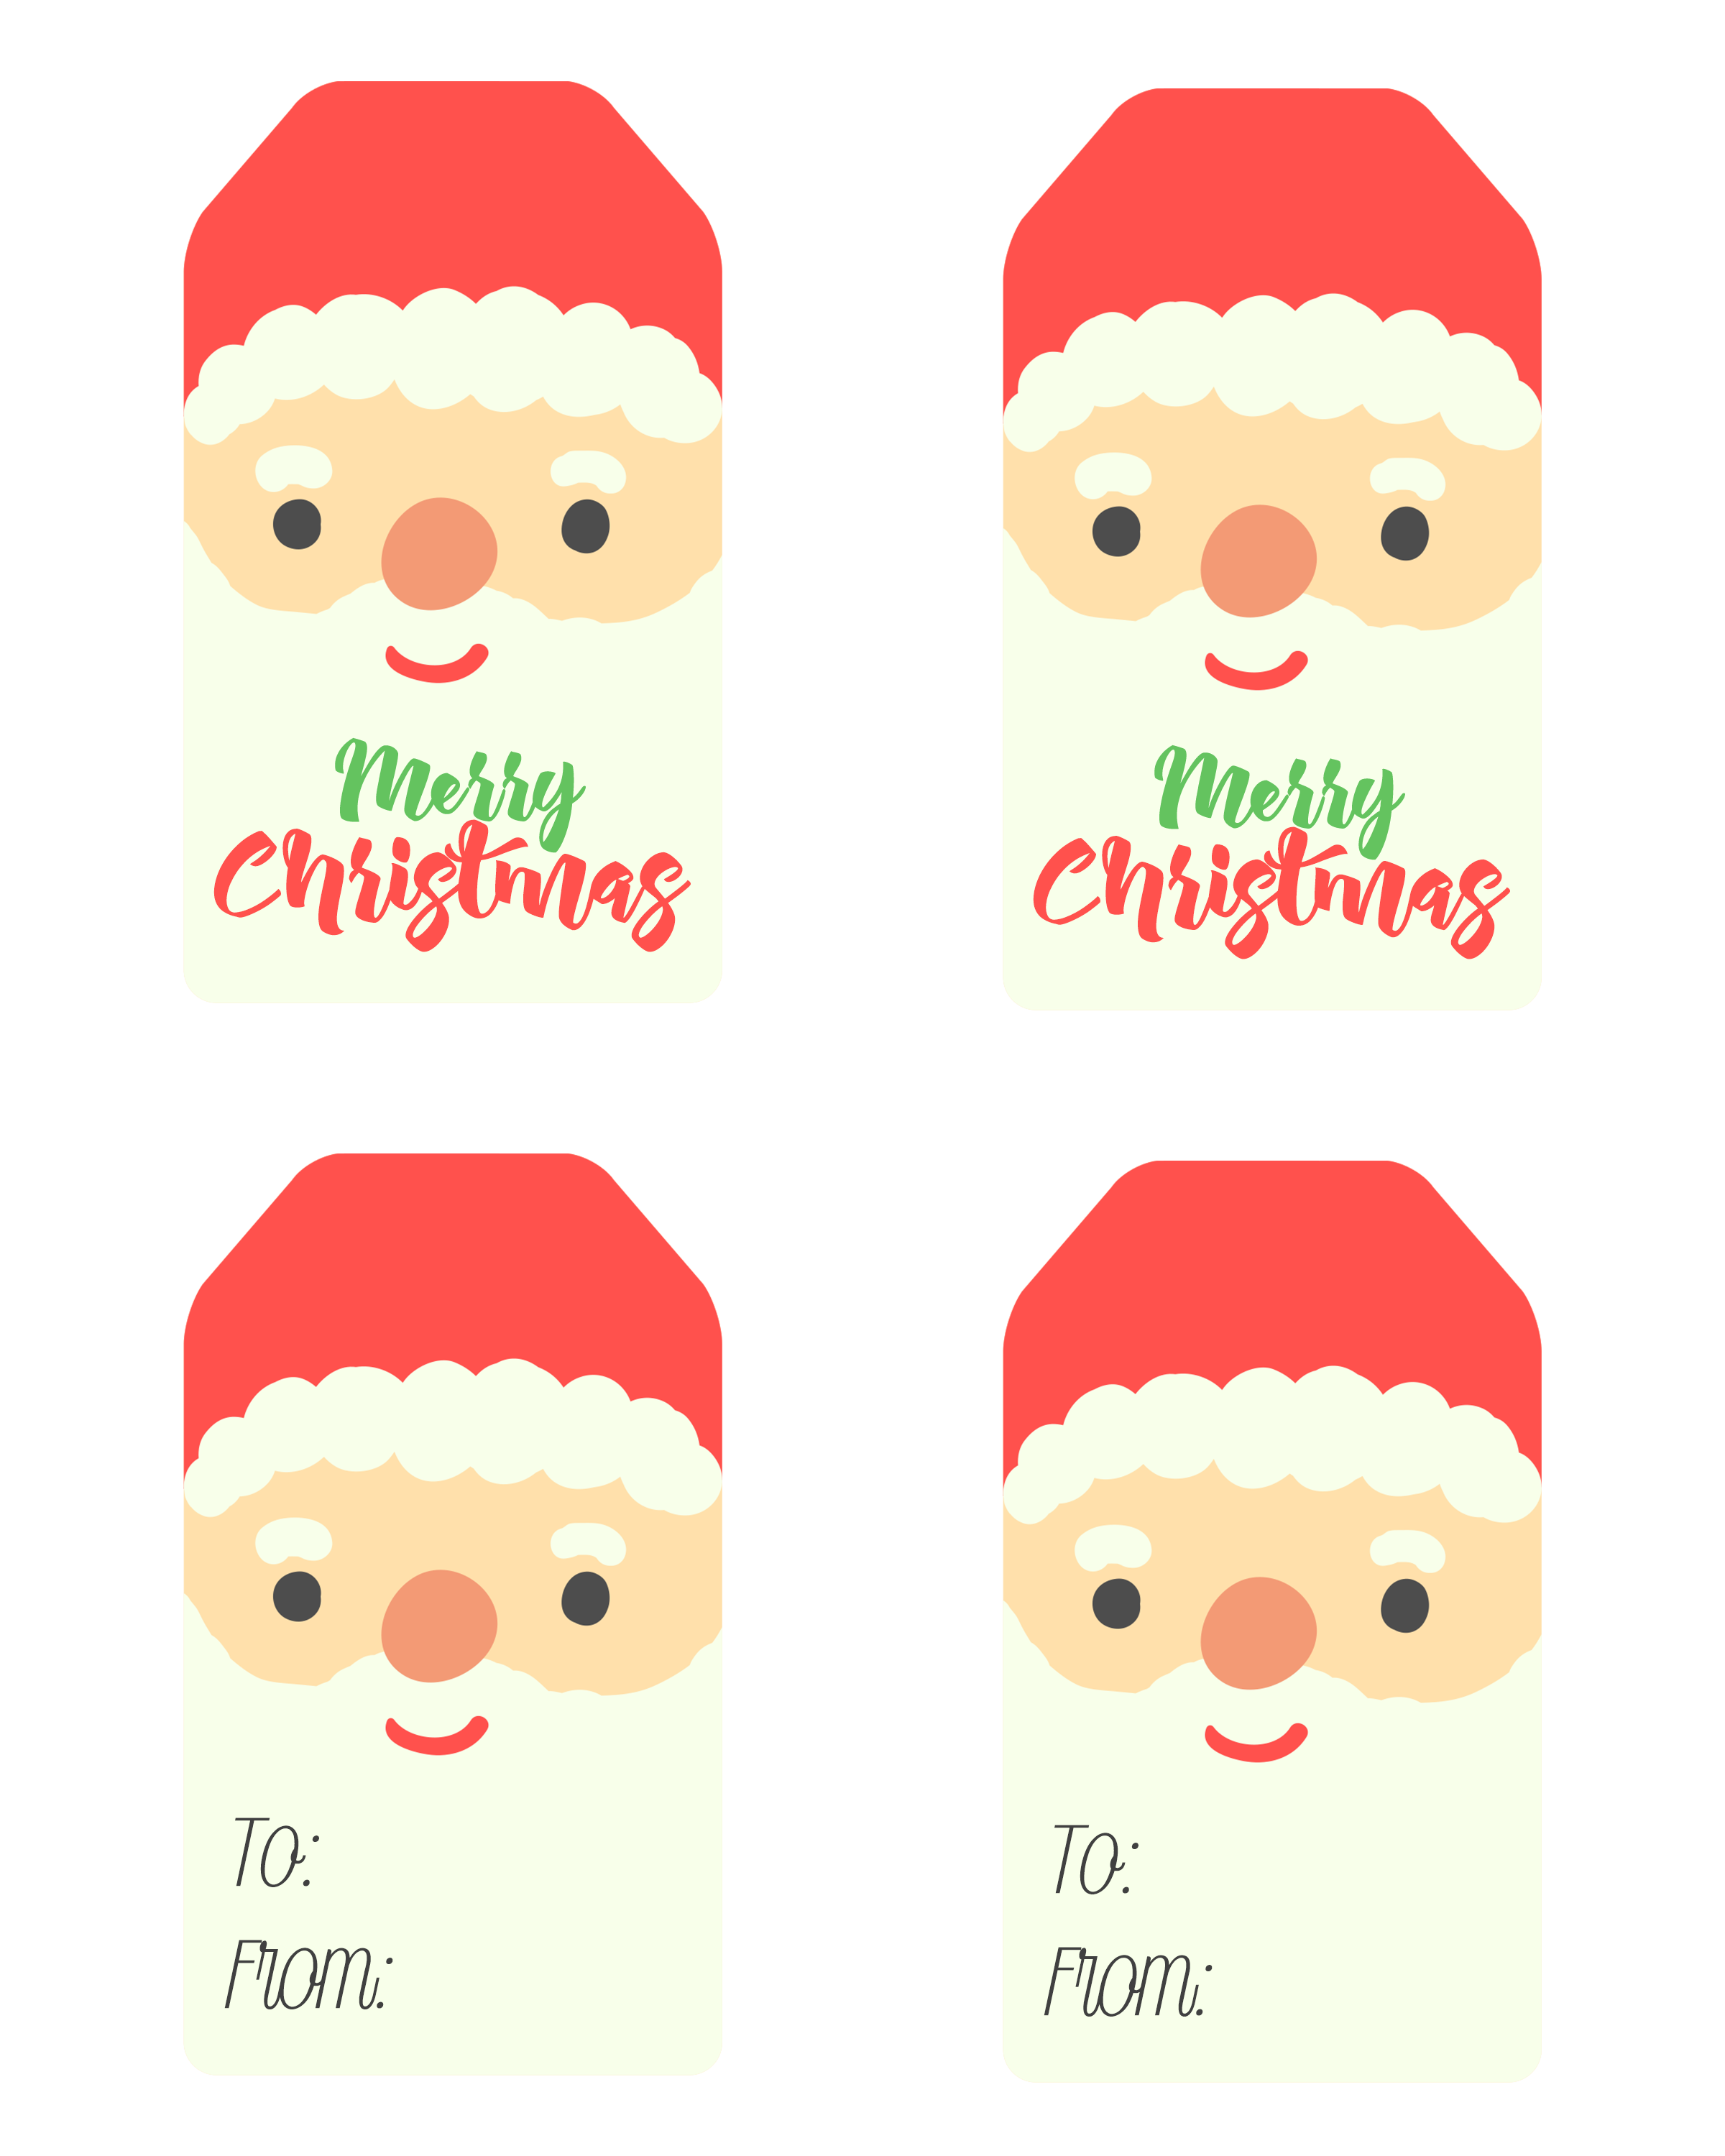 photograph regarding Printable Santa Claus named Totally free Printable Santa Claus Tags - The Cottage Sector